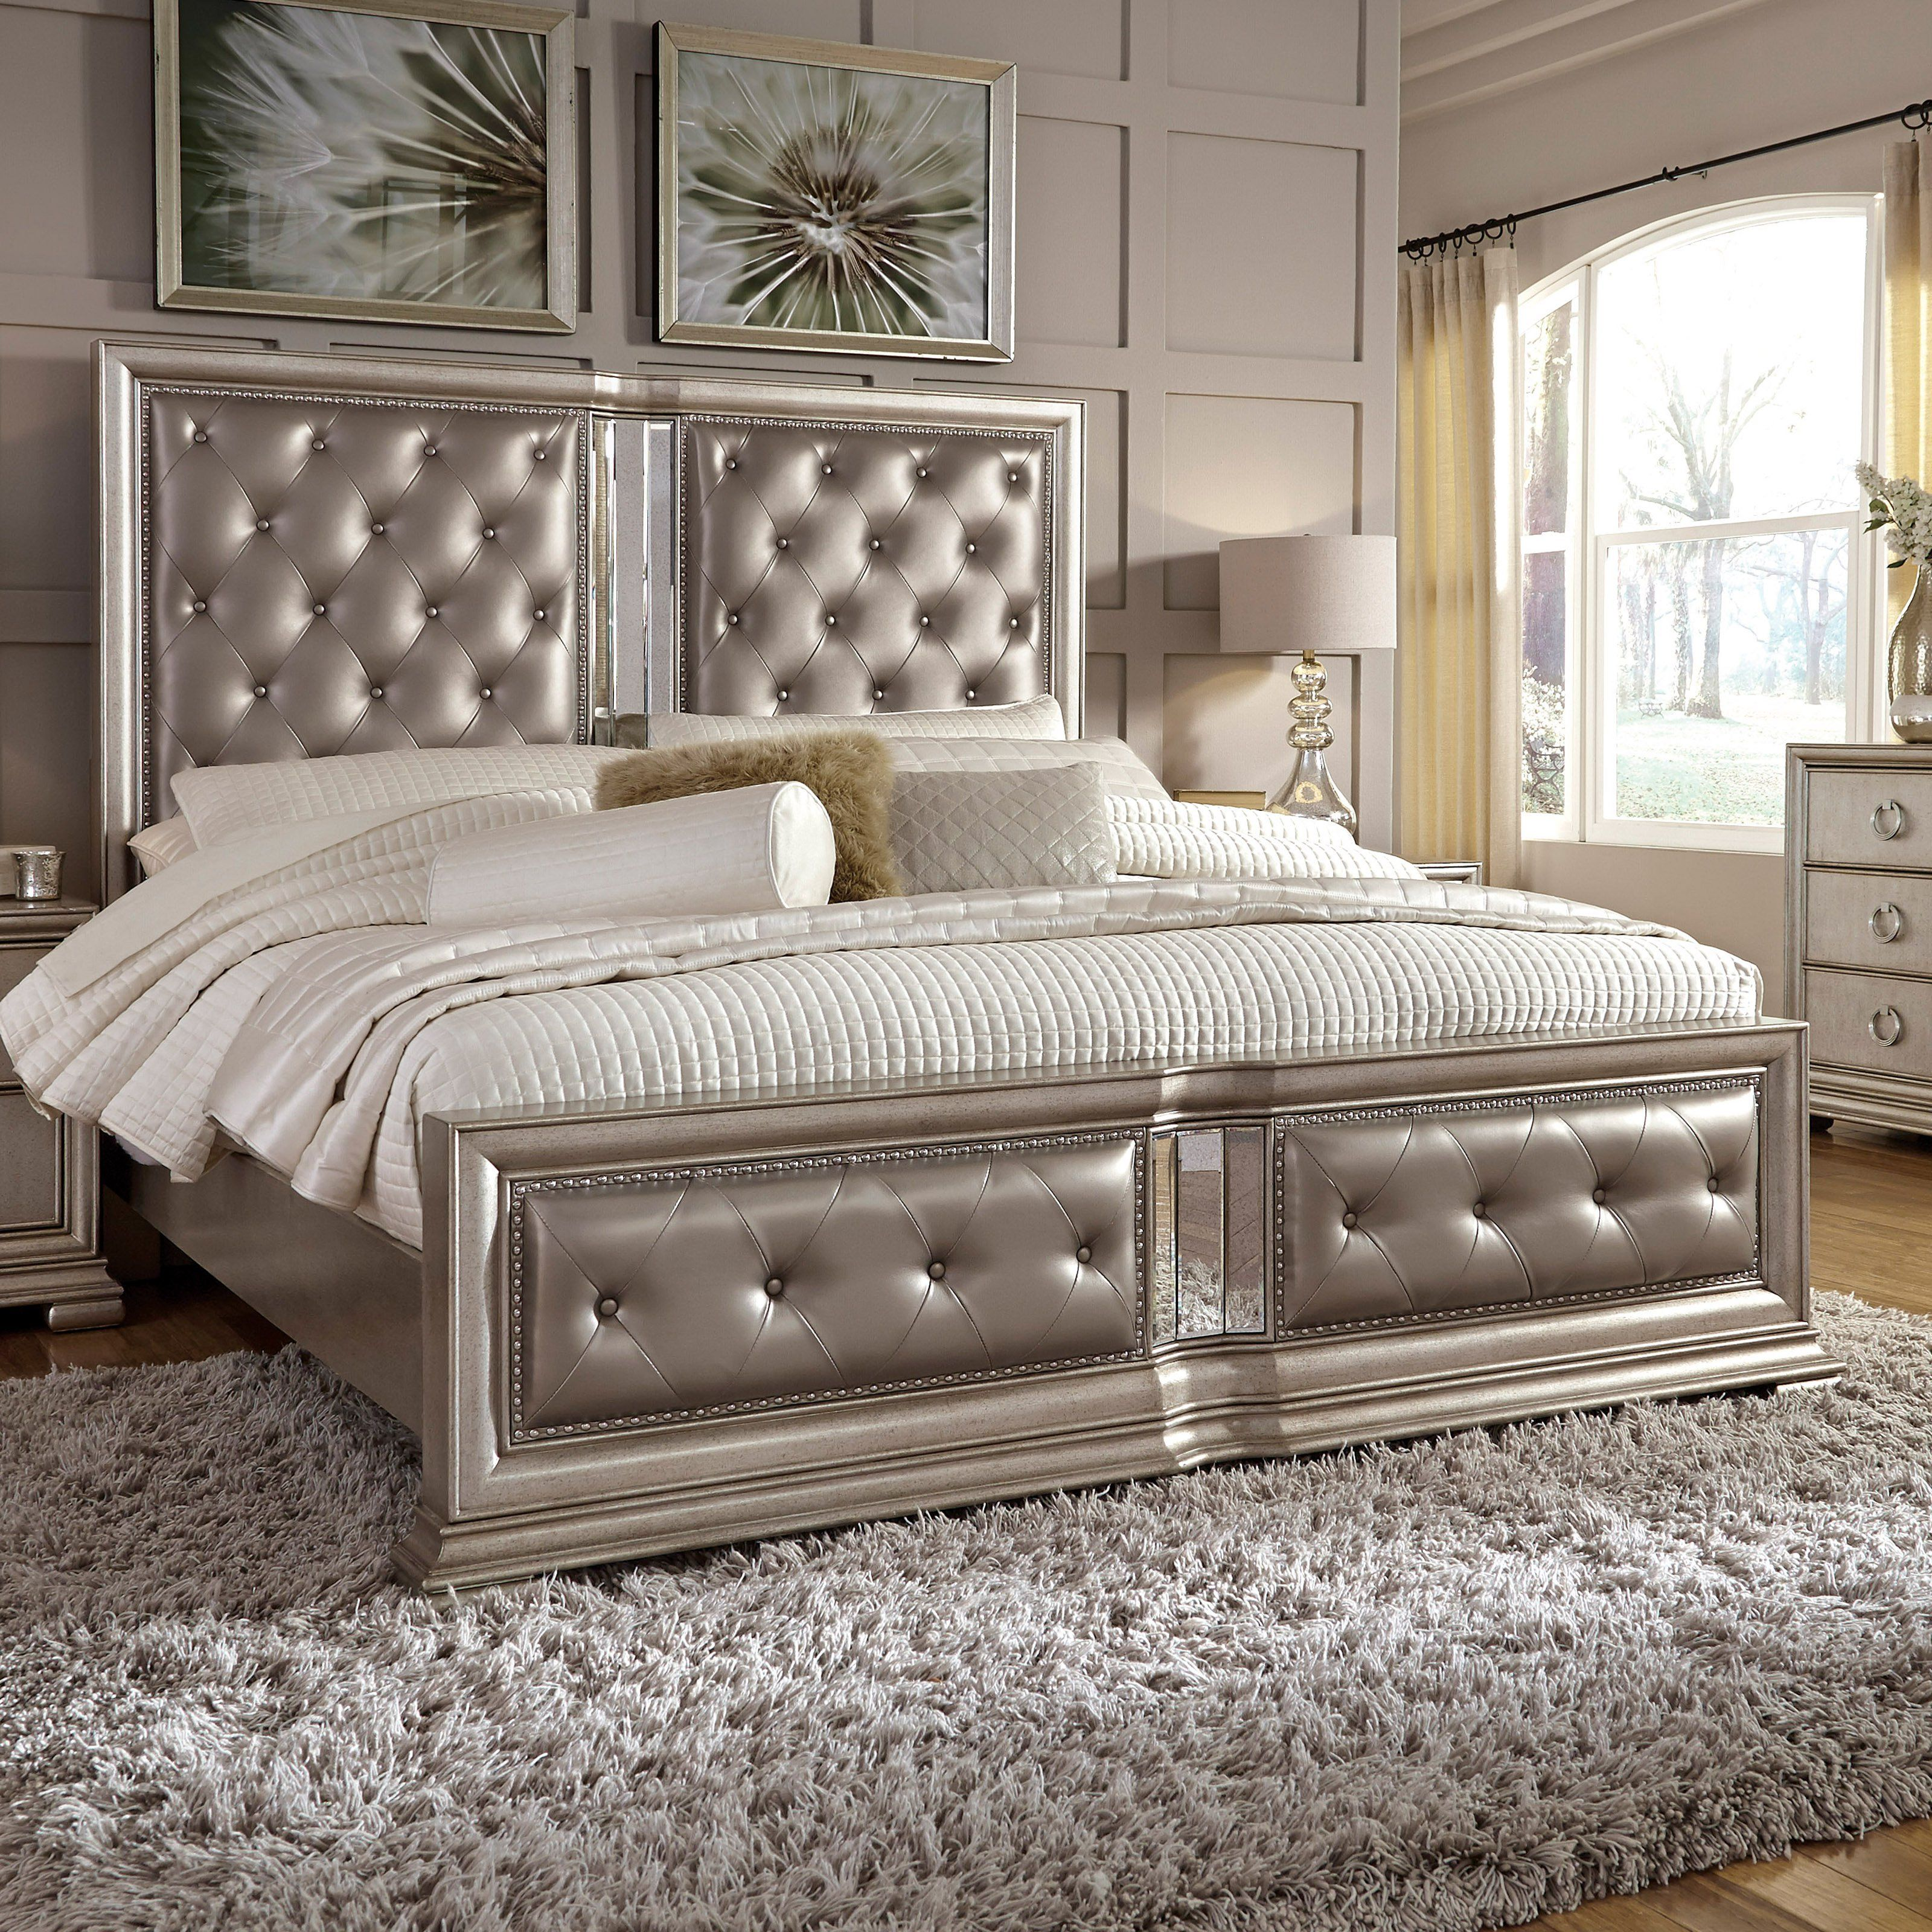 The Pulaski Couture Button Tufted Complete Platform Bed Is Nothing